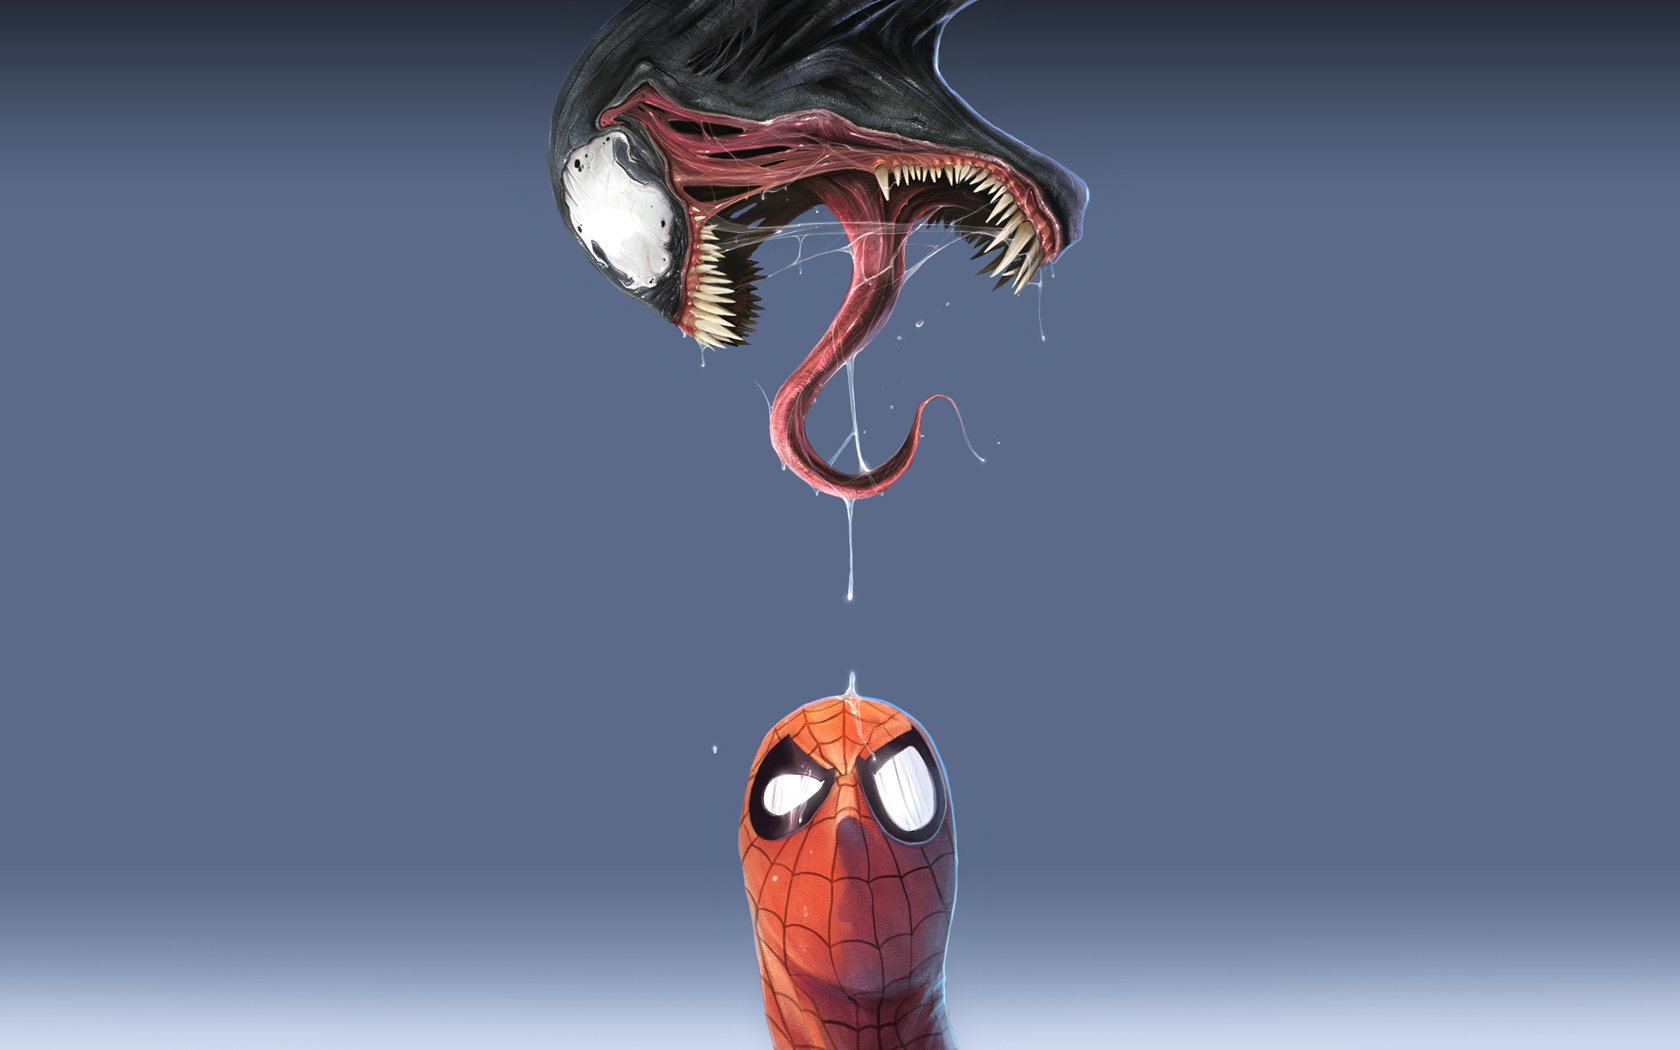 spiderman phone wallpaper - sf wallpaper